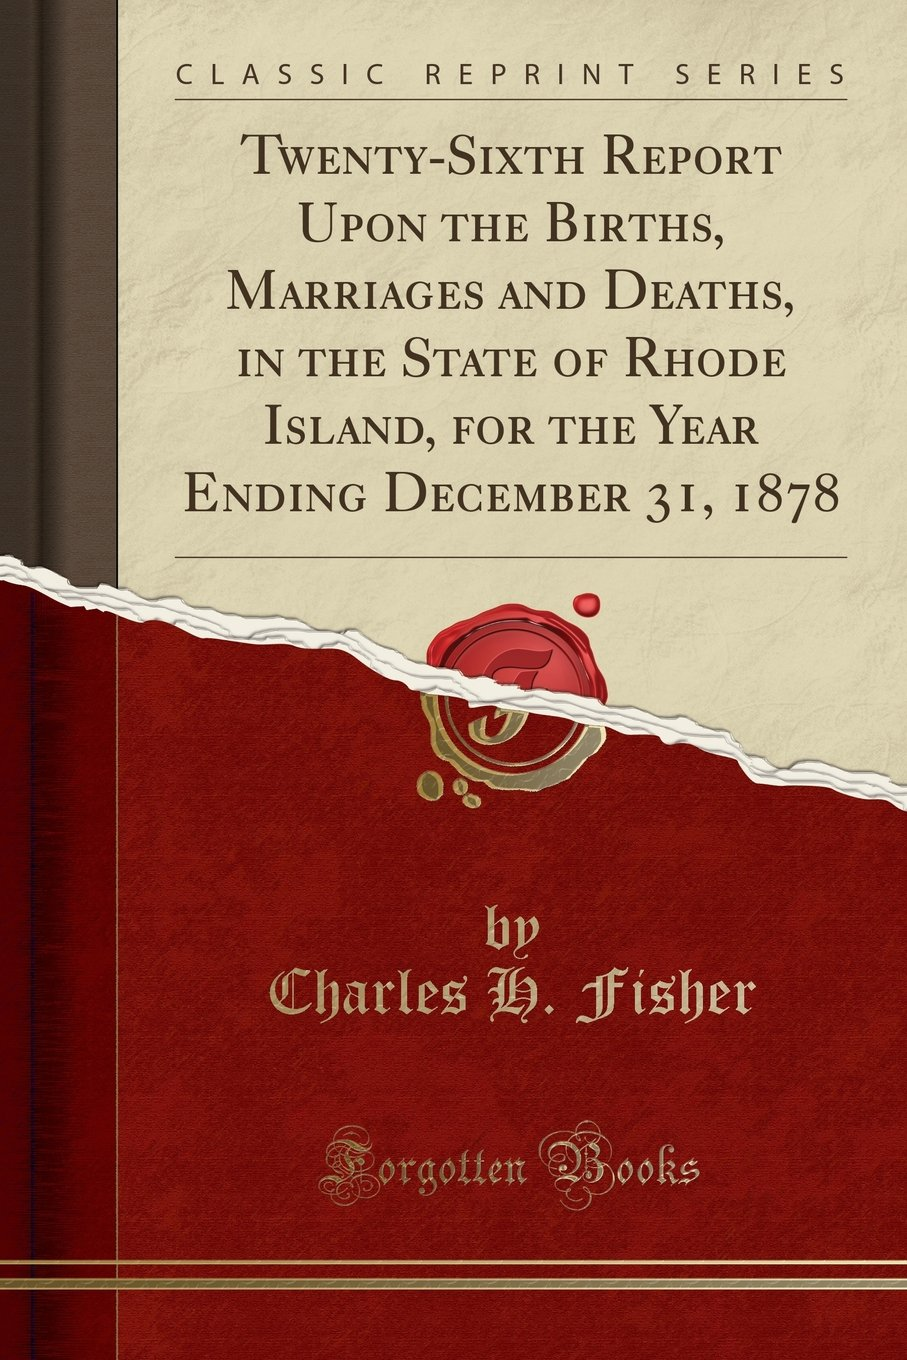 Download Twenty-Sixth Report Upon the Births, Marriages and Deaths, in the State of Rhode Island, for the Year Ending December 31, 1878 (Classic Reprint) ebook